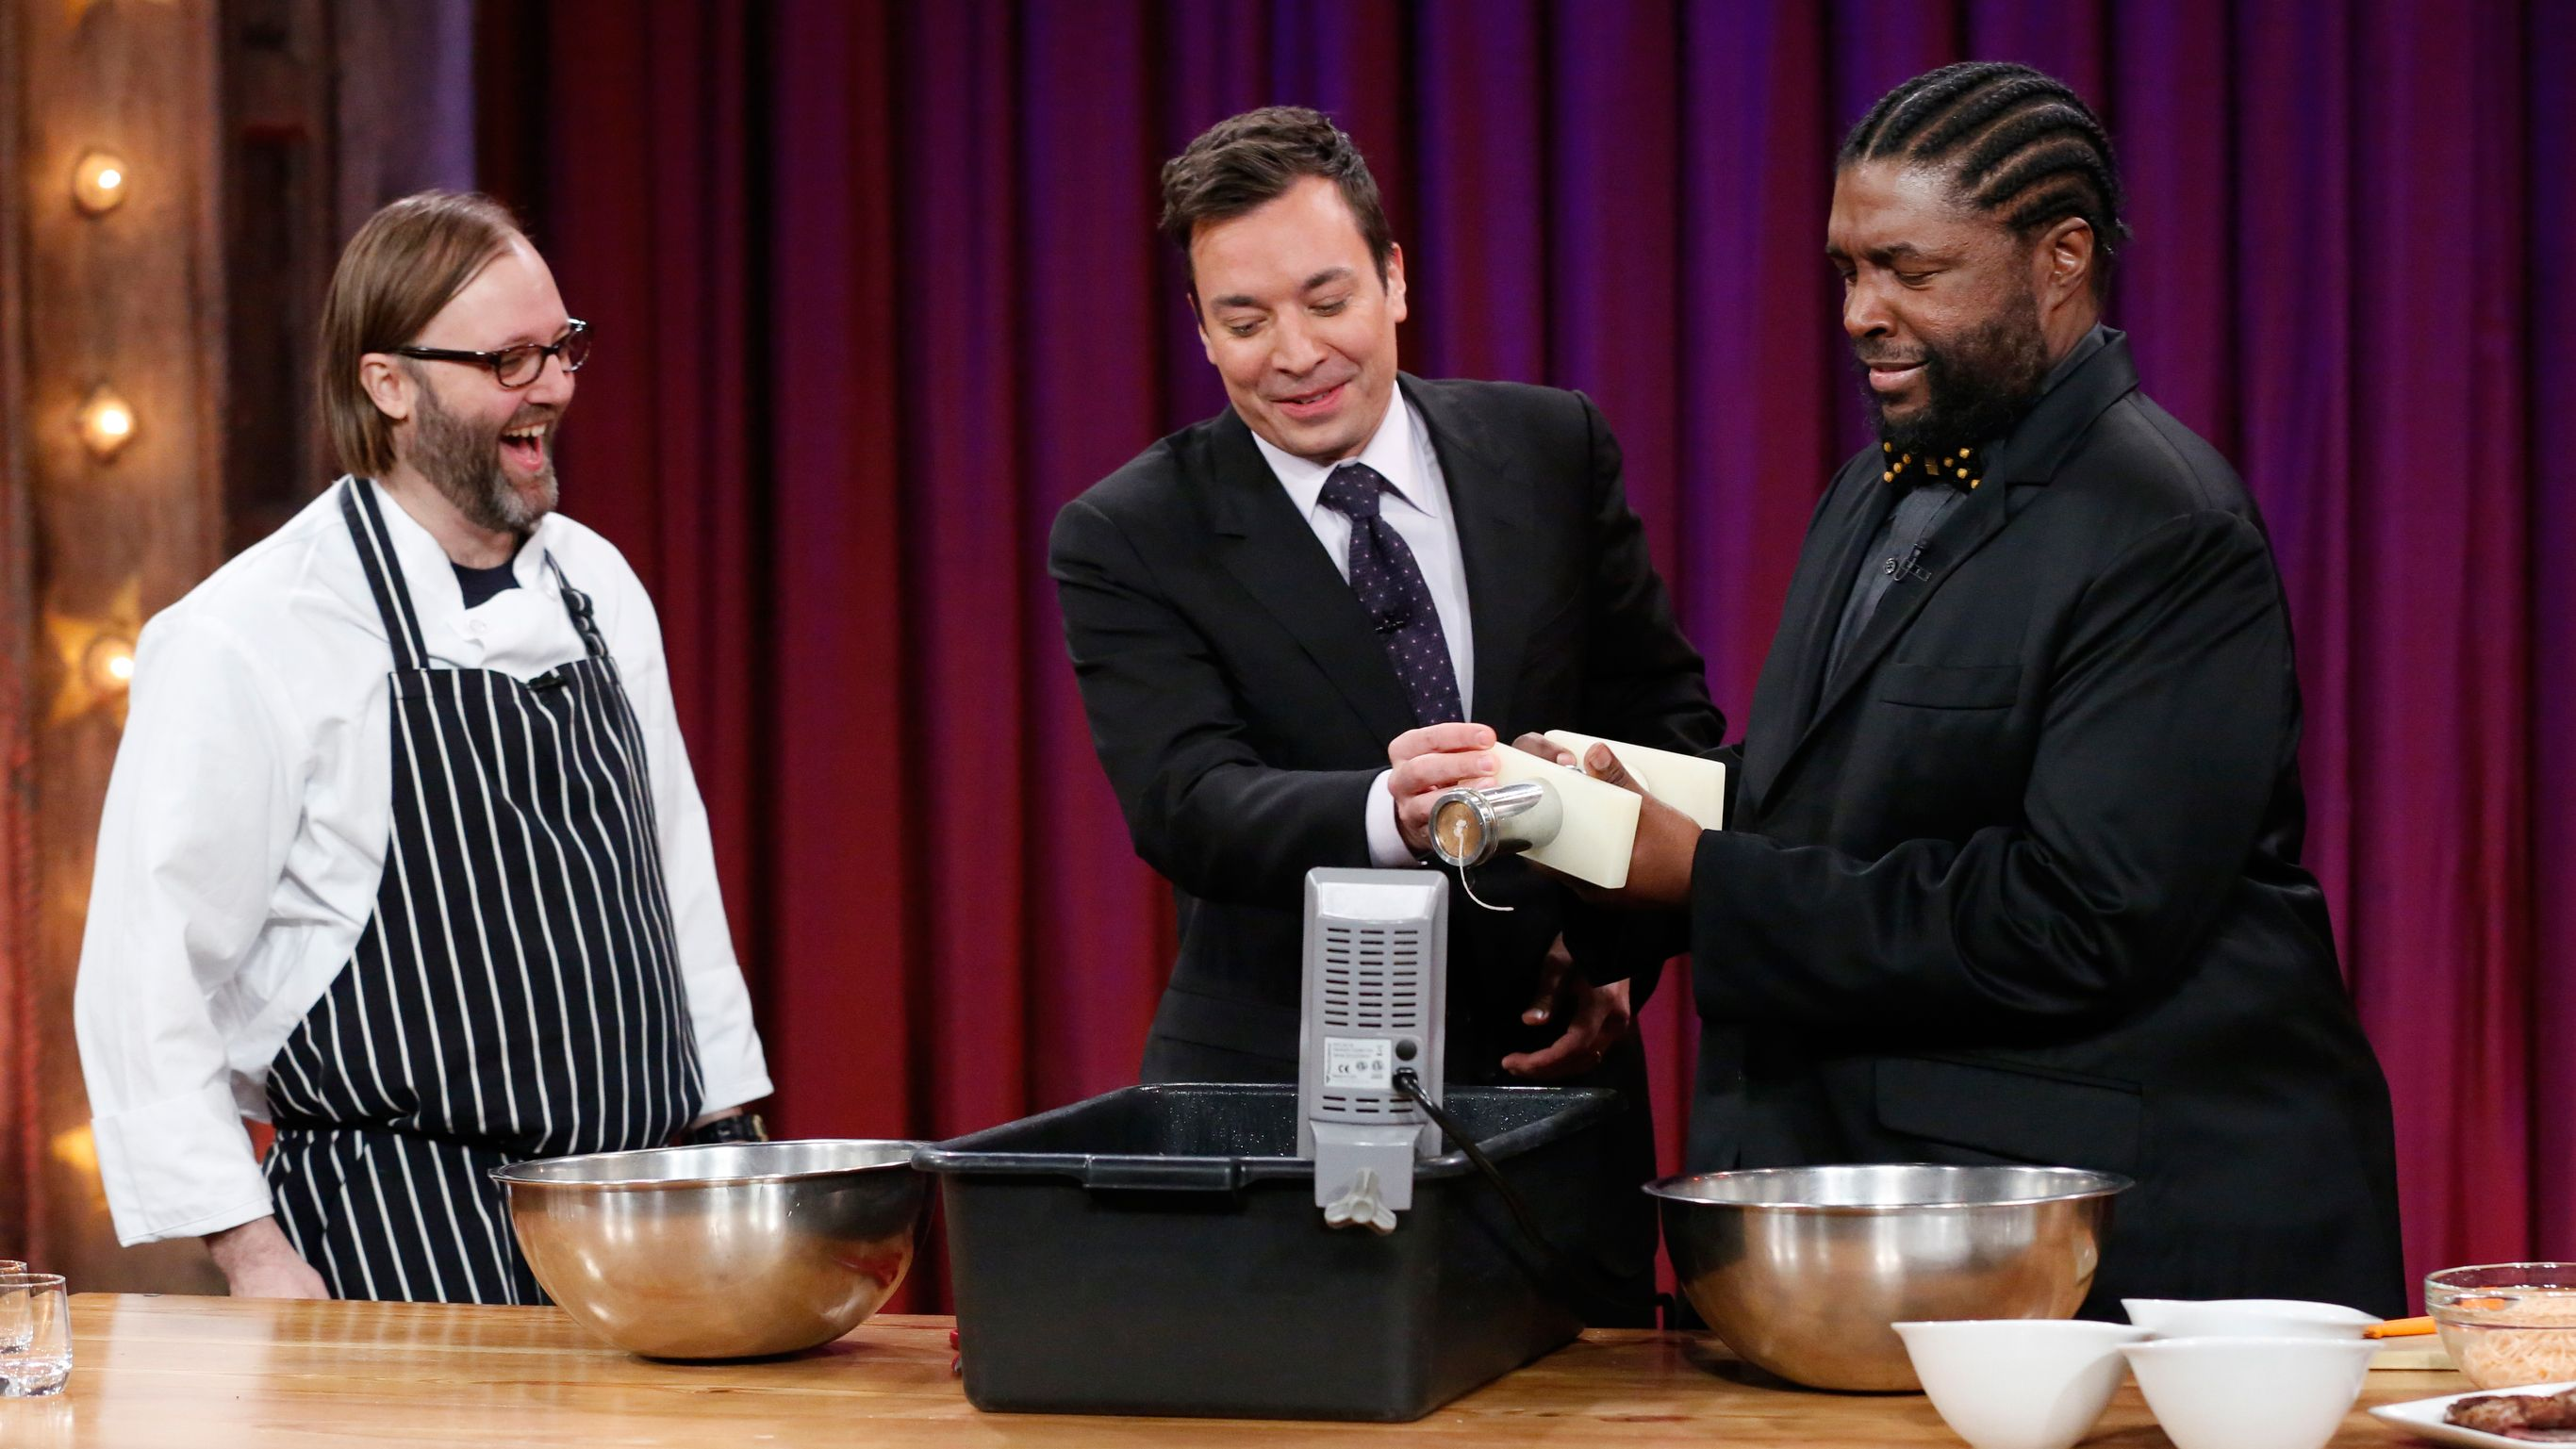 Chef Wylie Dufresne teaches Jimmy Fallon and Questlove how to make shrimp noodles: http://www.latenightwithjimmyfallon.com/blogs/2014/01/wylie-dufresne-takes-shrimp-to-a-new-level/